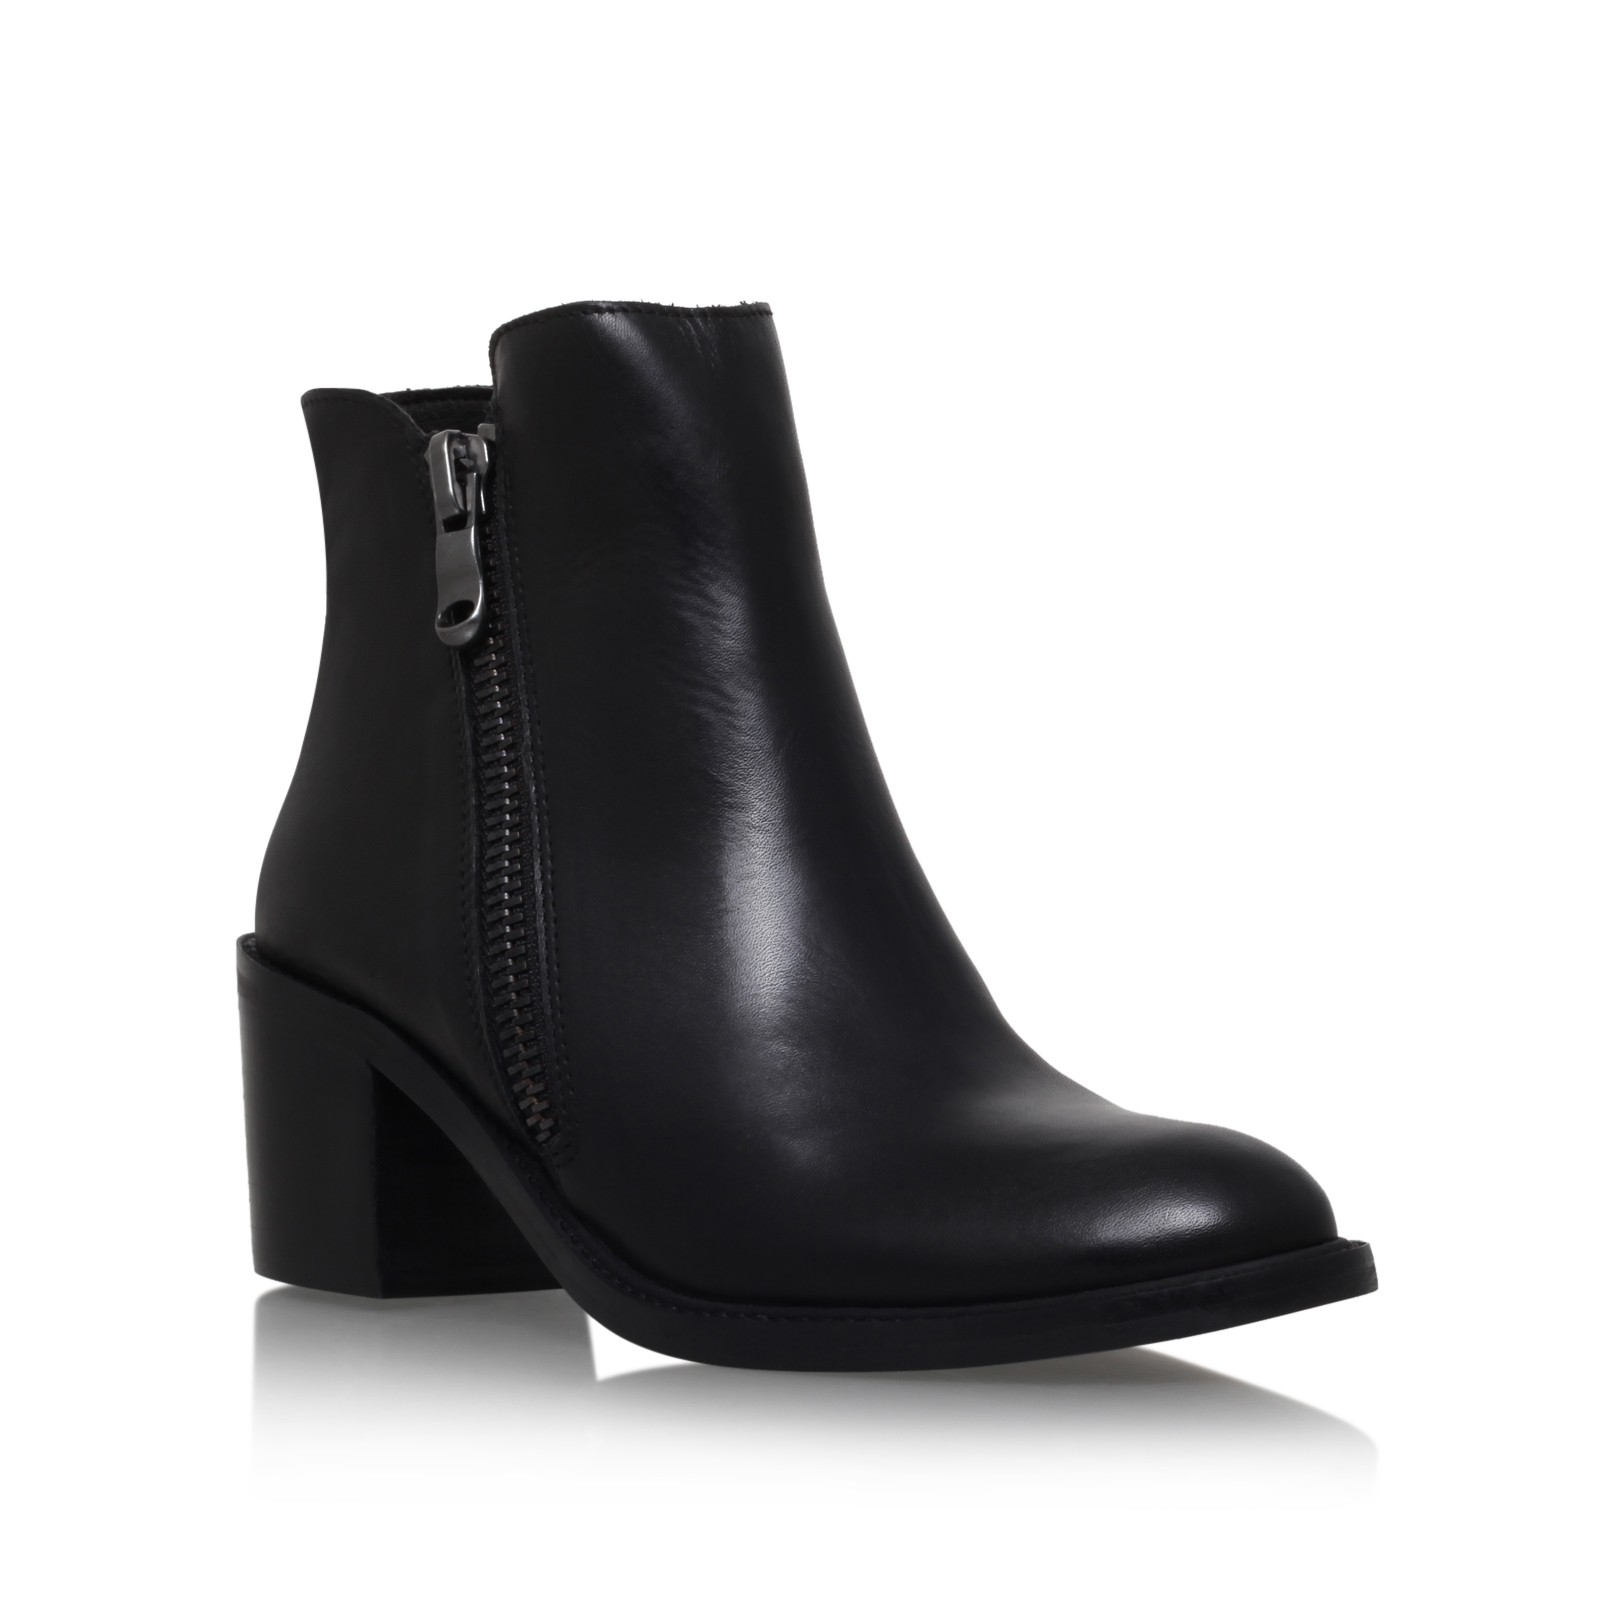 Carvela Kurt Geiger Skim In Black | Lyst